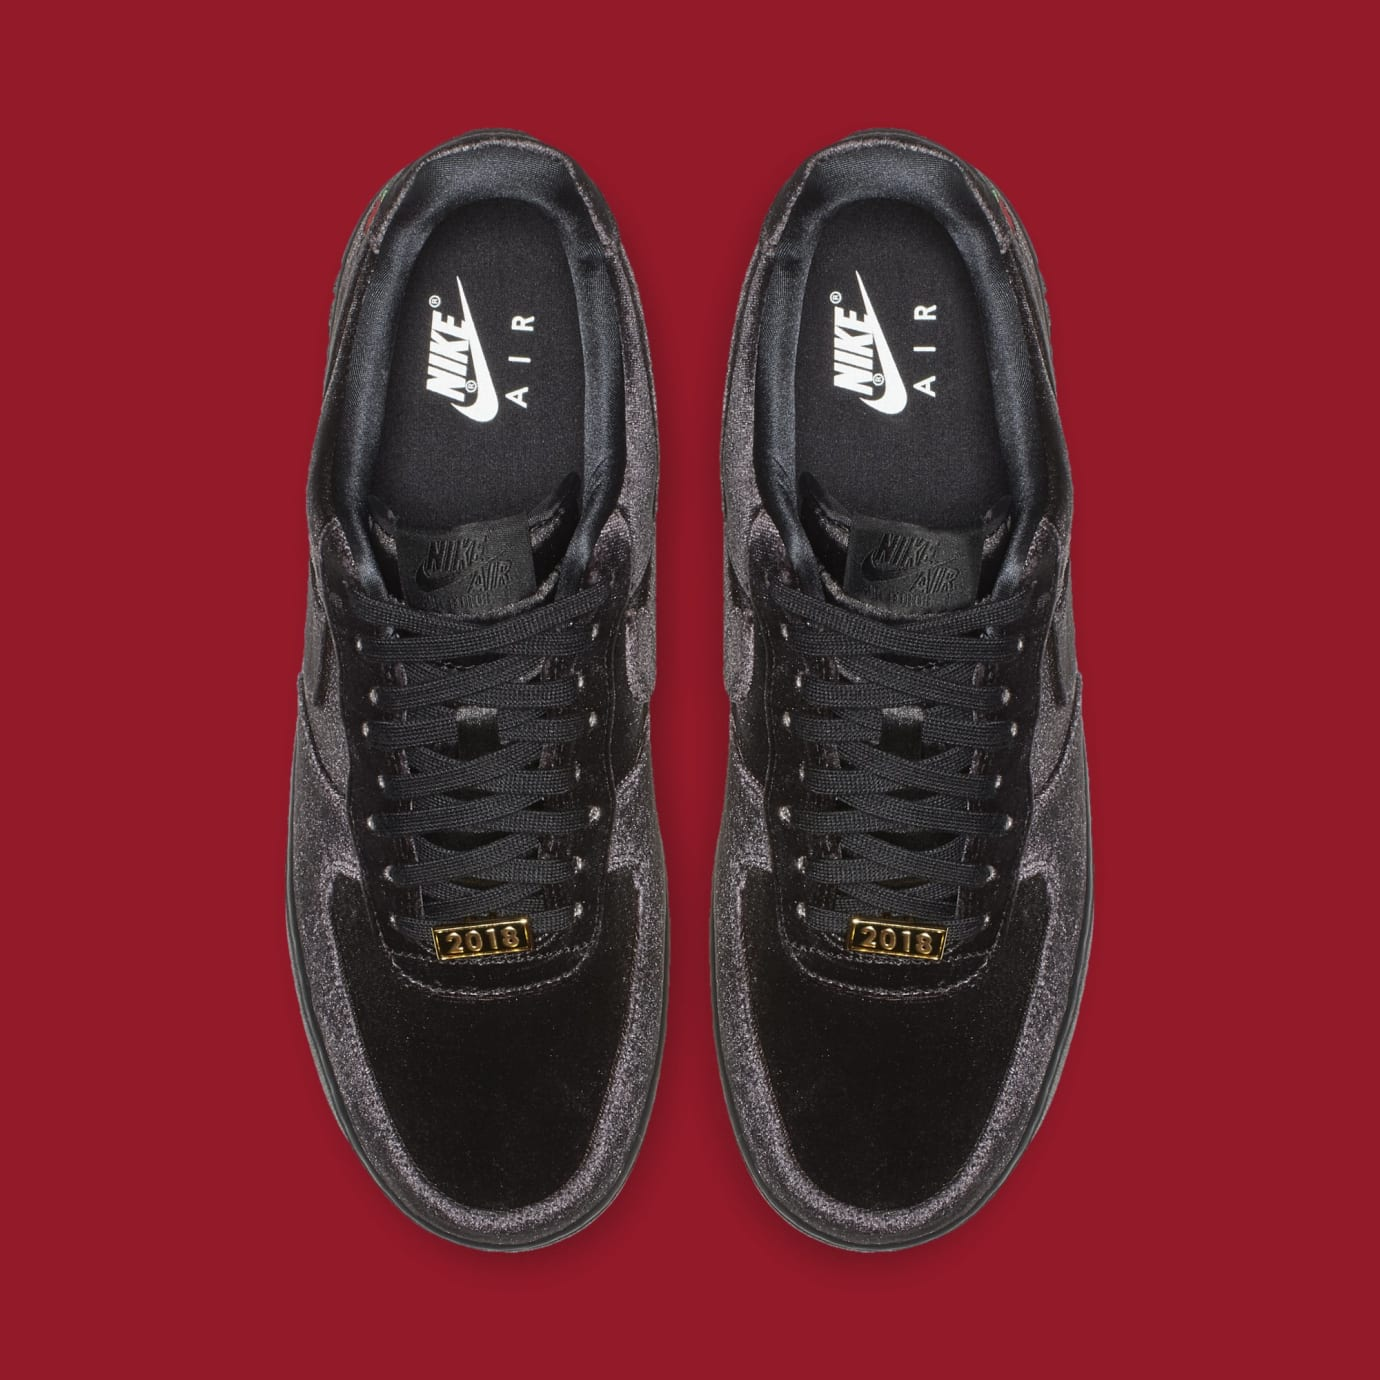 1 Low Nike Rose' Release Force 'velvet DateSole 003 Air Ah8462 xBWrodCe